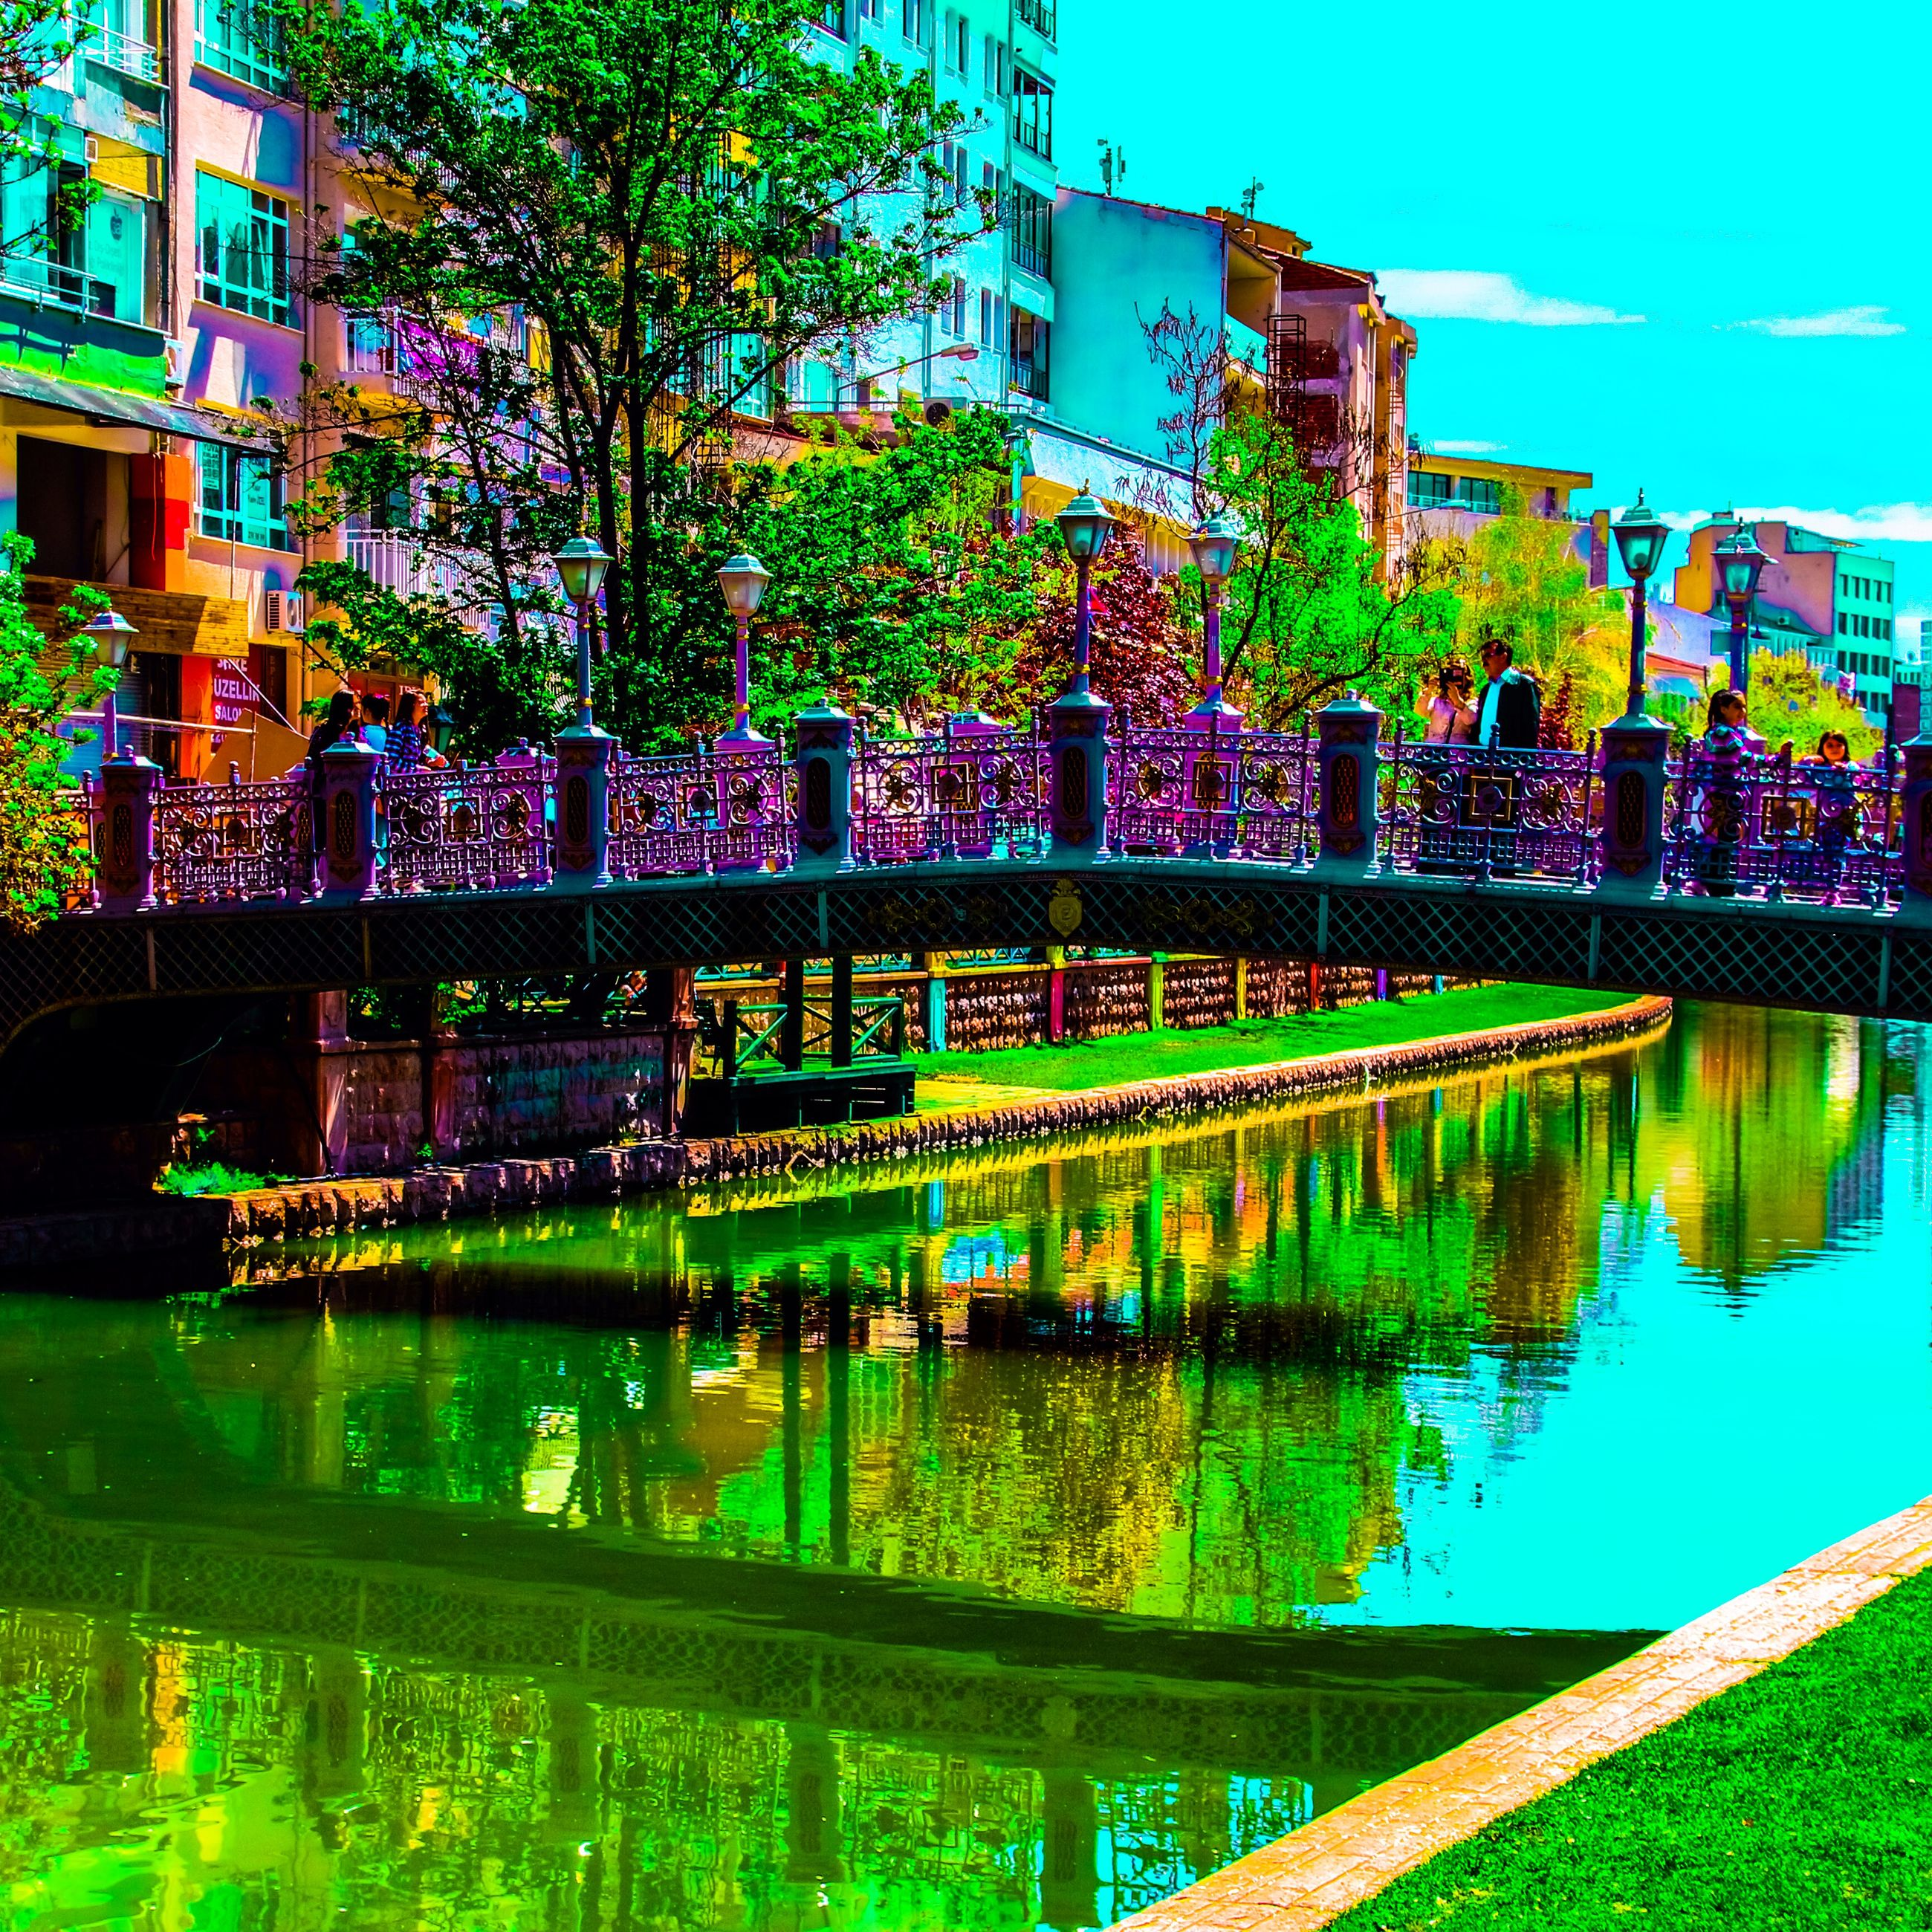 architecture, built structure, building exterior, water, reflection, tree, city, green color, growth, pond, blue, day, river, outdoors, plant, canal, building, incidental people, connection, no people